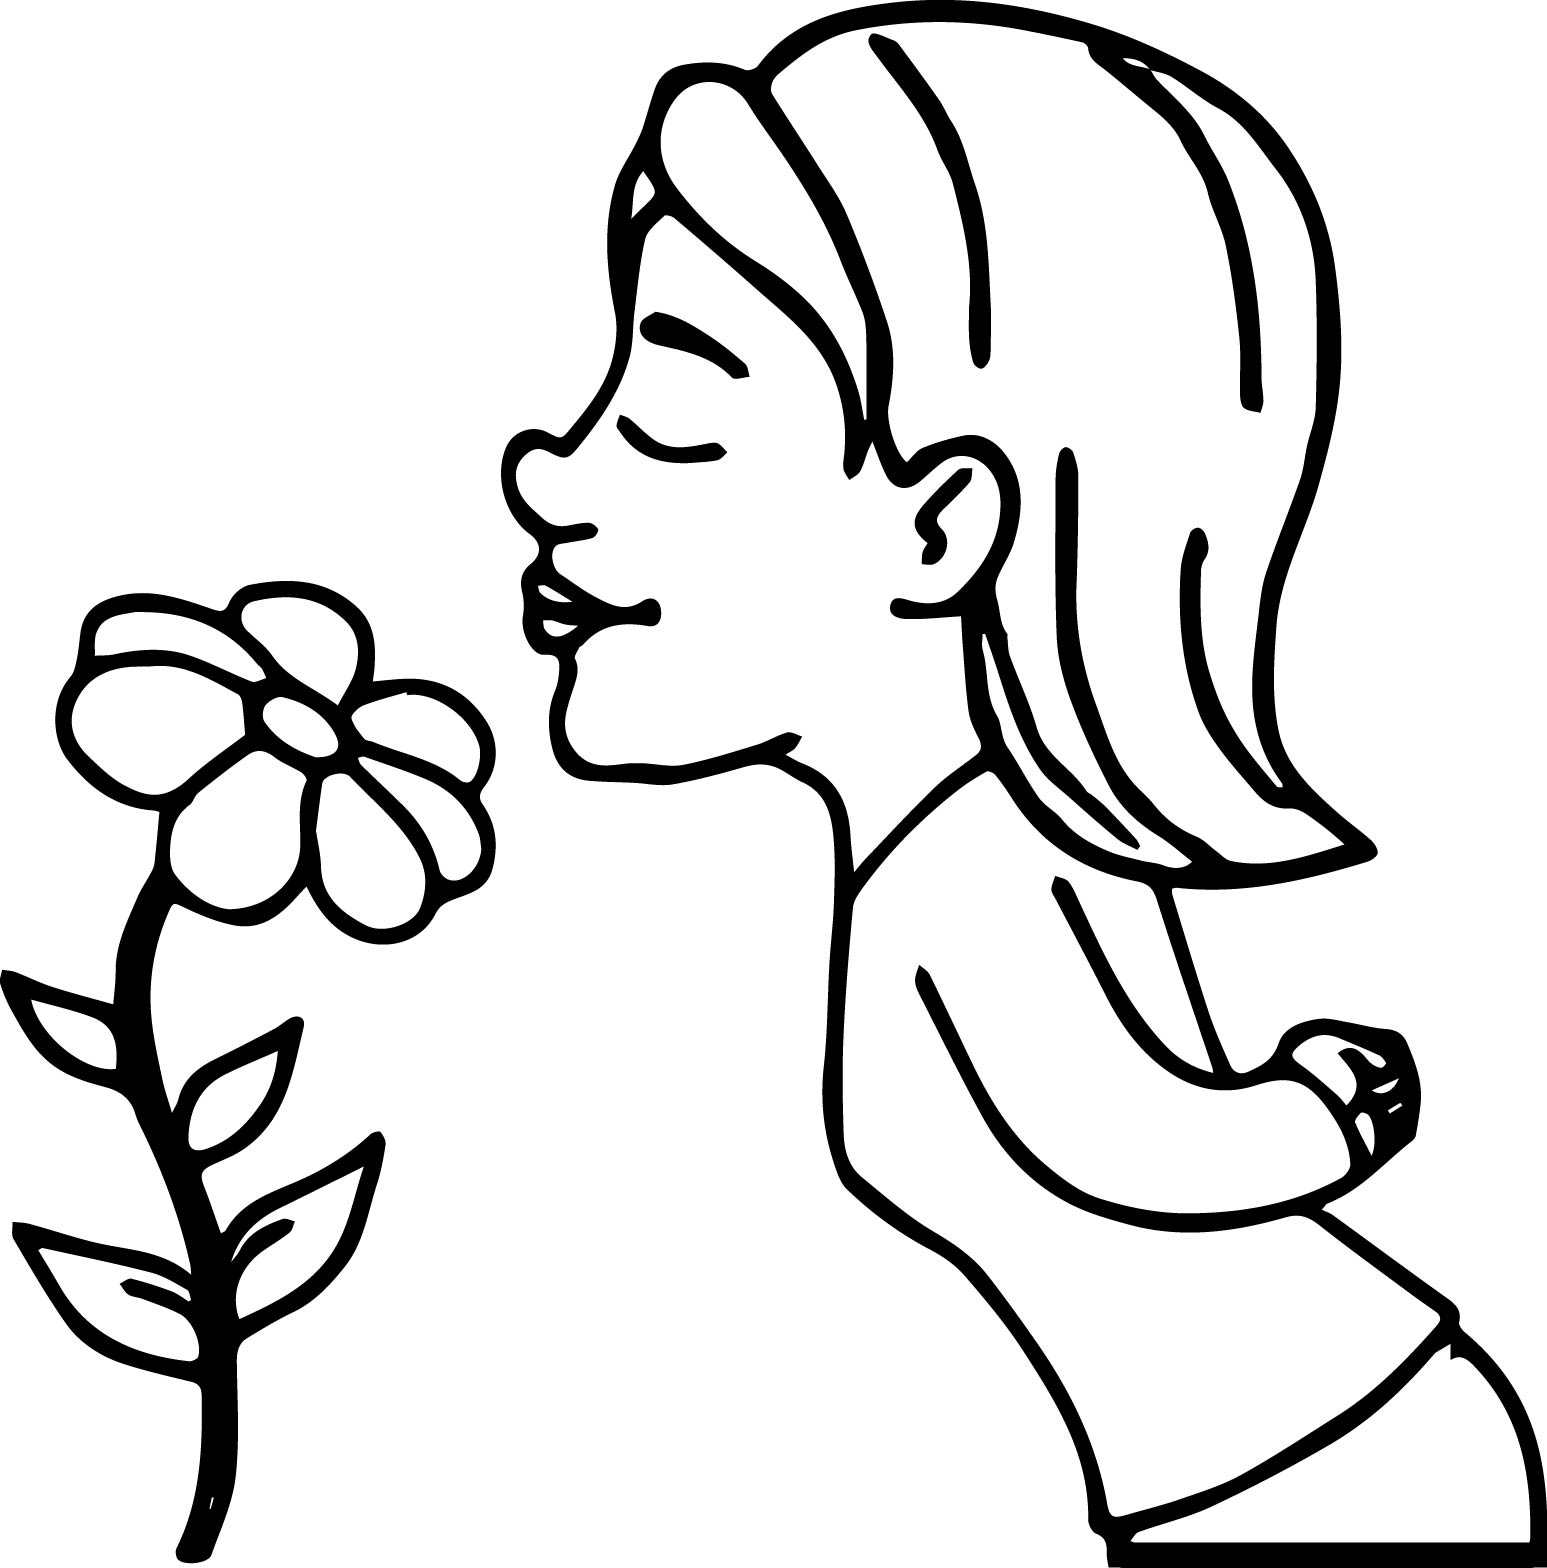 Rainforest flower coloring pages - Flower Coloring Pages